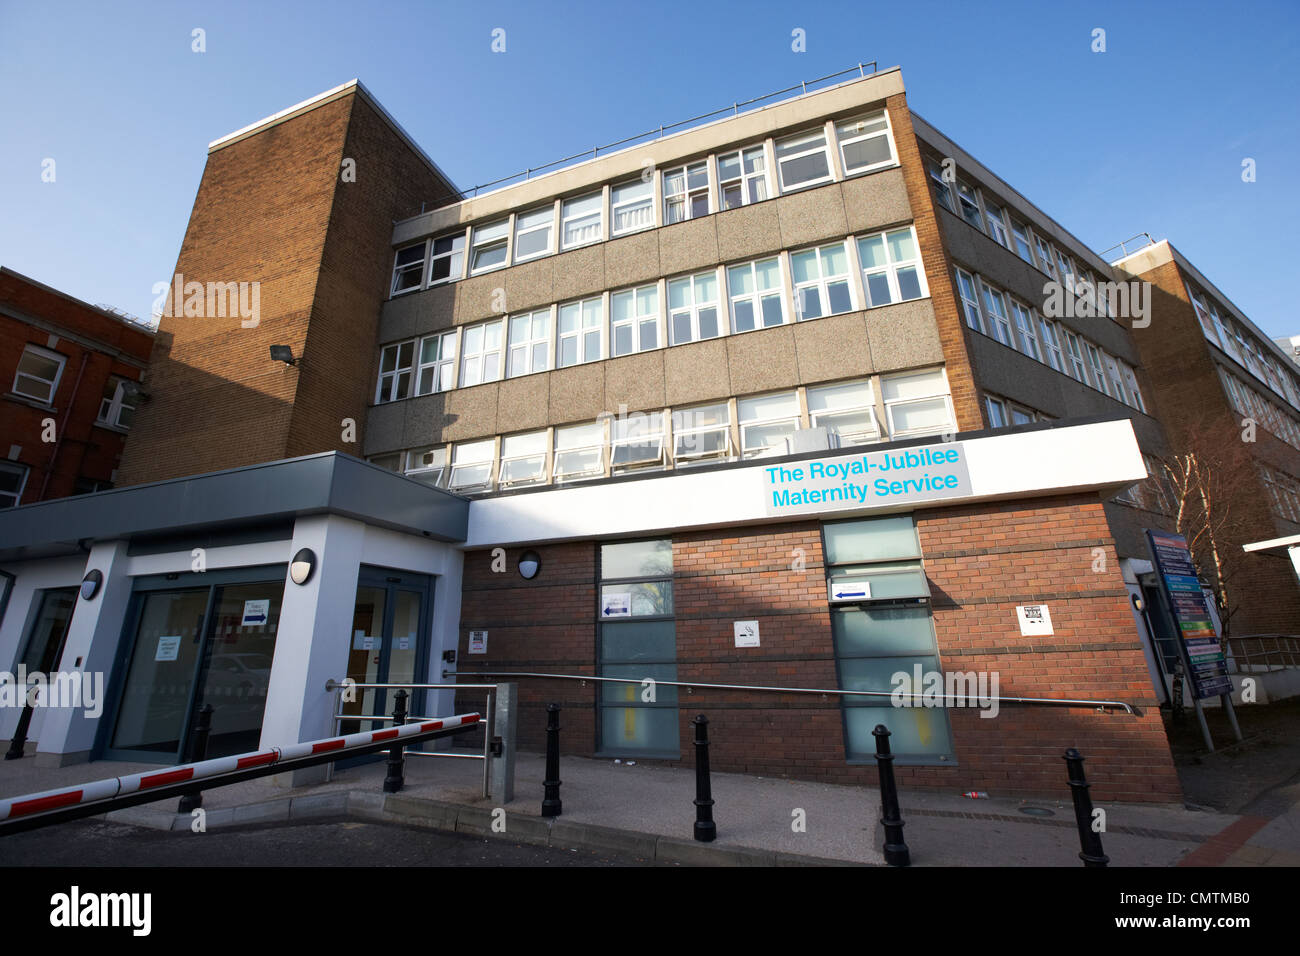 royal jubilee maternity services part of the royal victoria hospital west belfast northern ireland uk - Stock Image